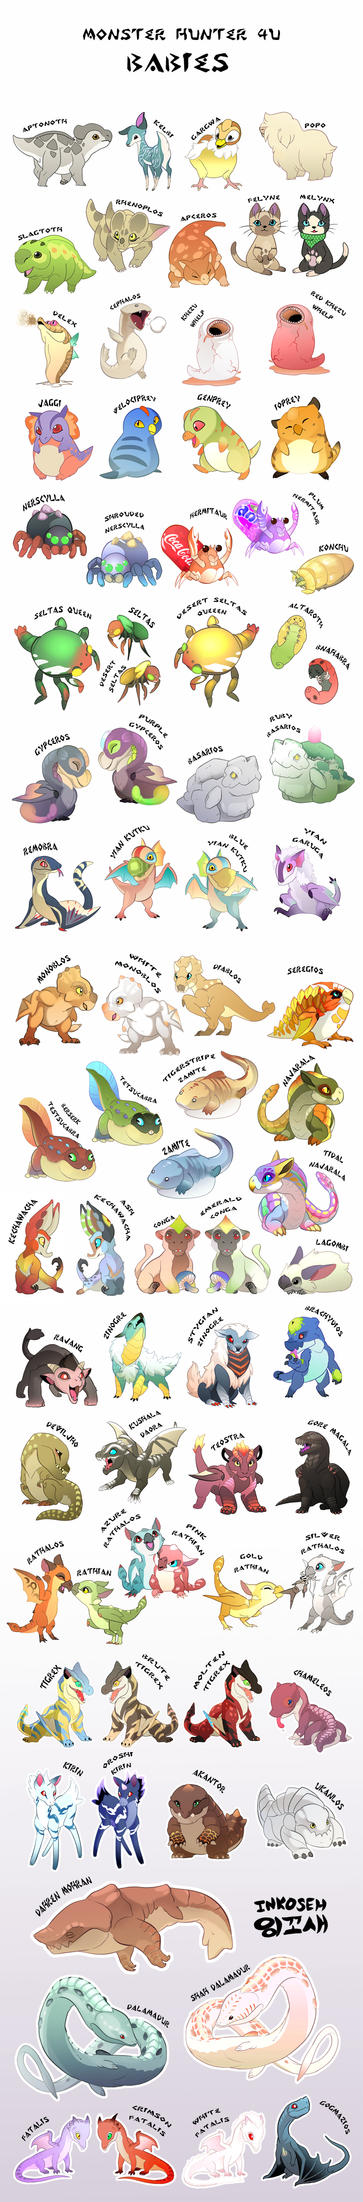 Monster Hunter 4U Babies by macawnivore